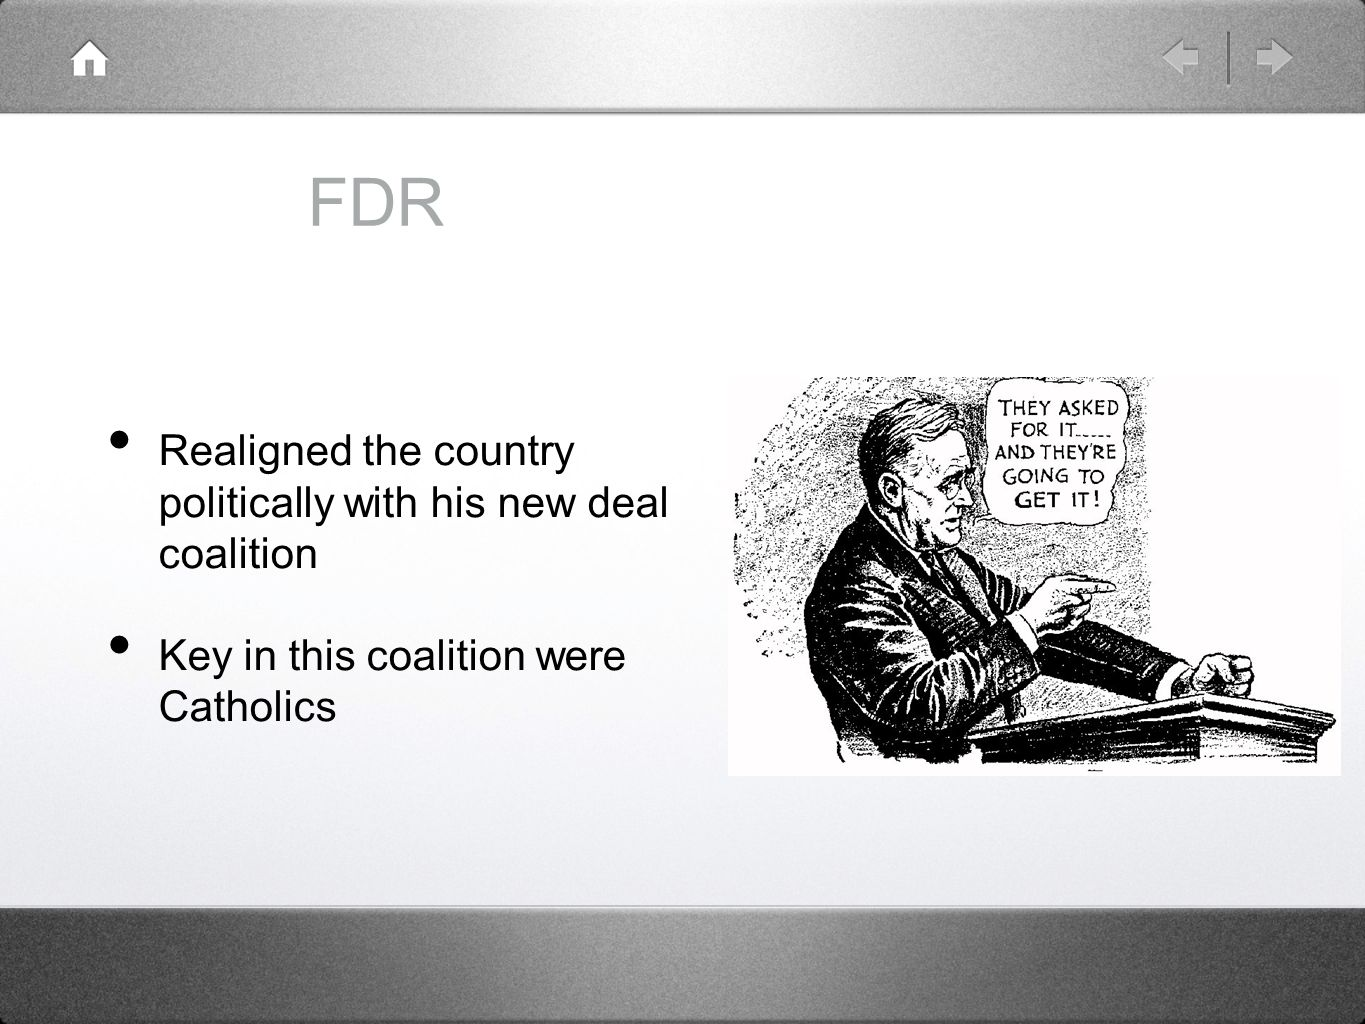 FDR Realigned the country politically with his new deal coalition Key in this coalition were Catholics